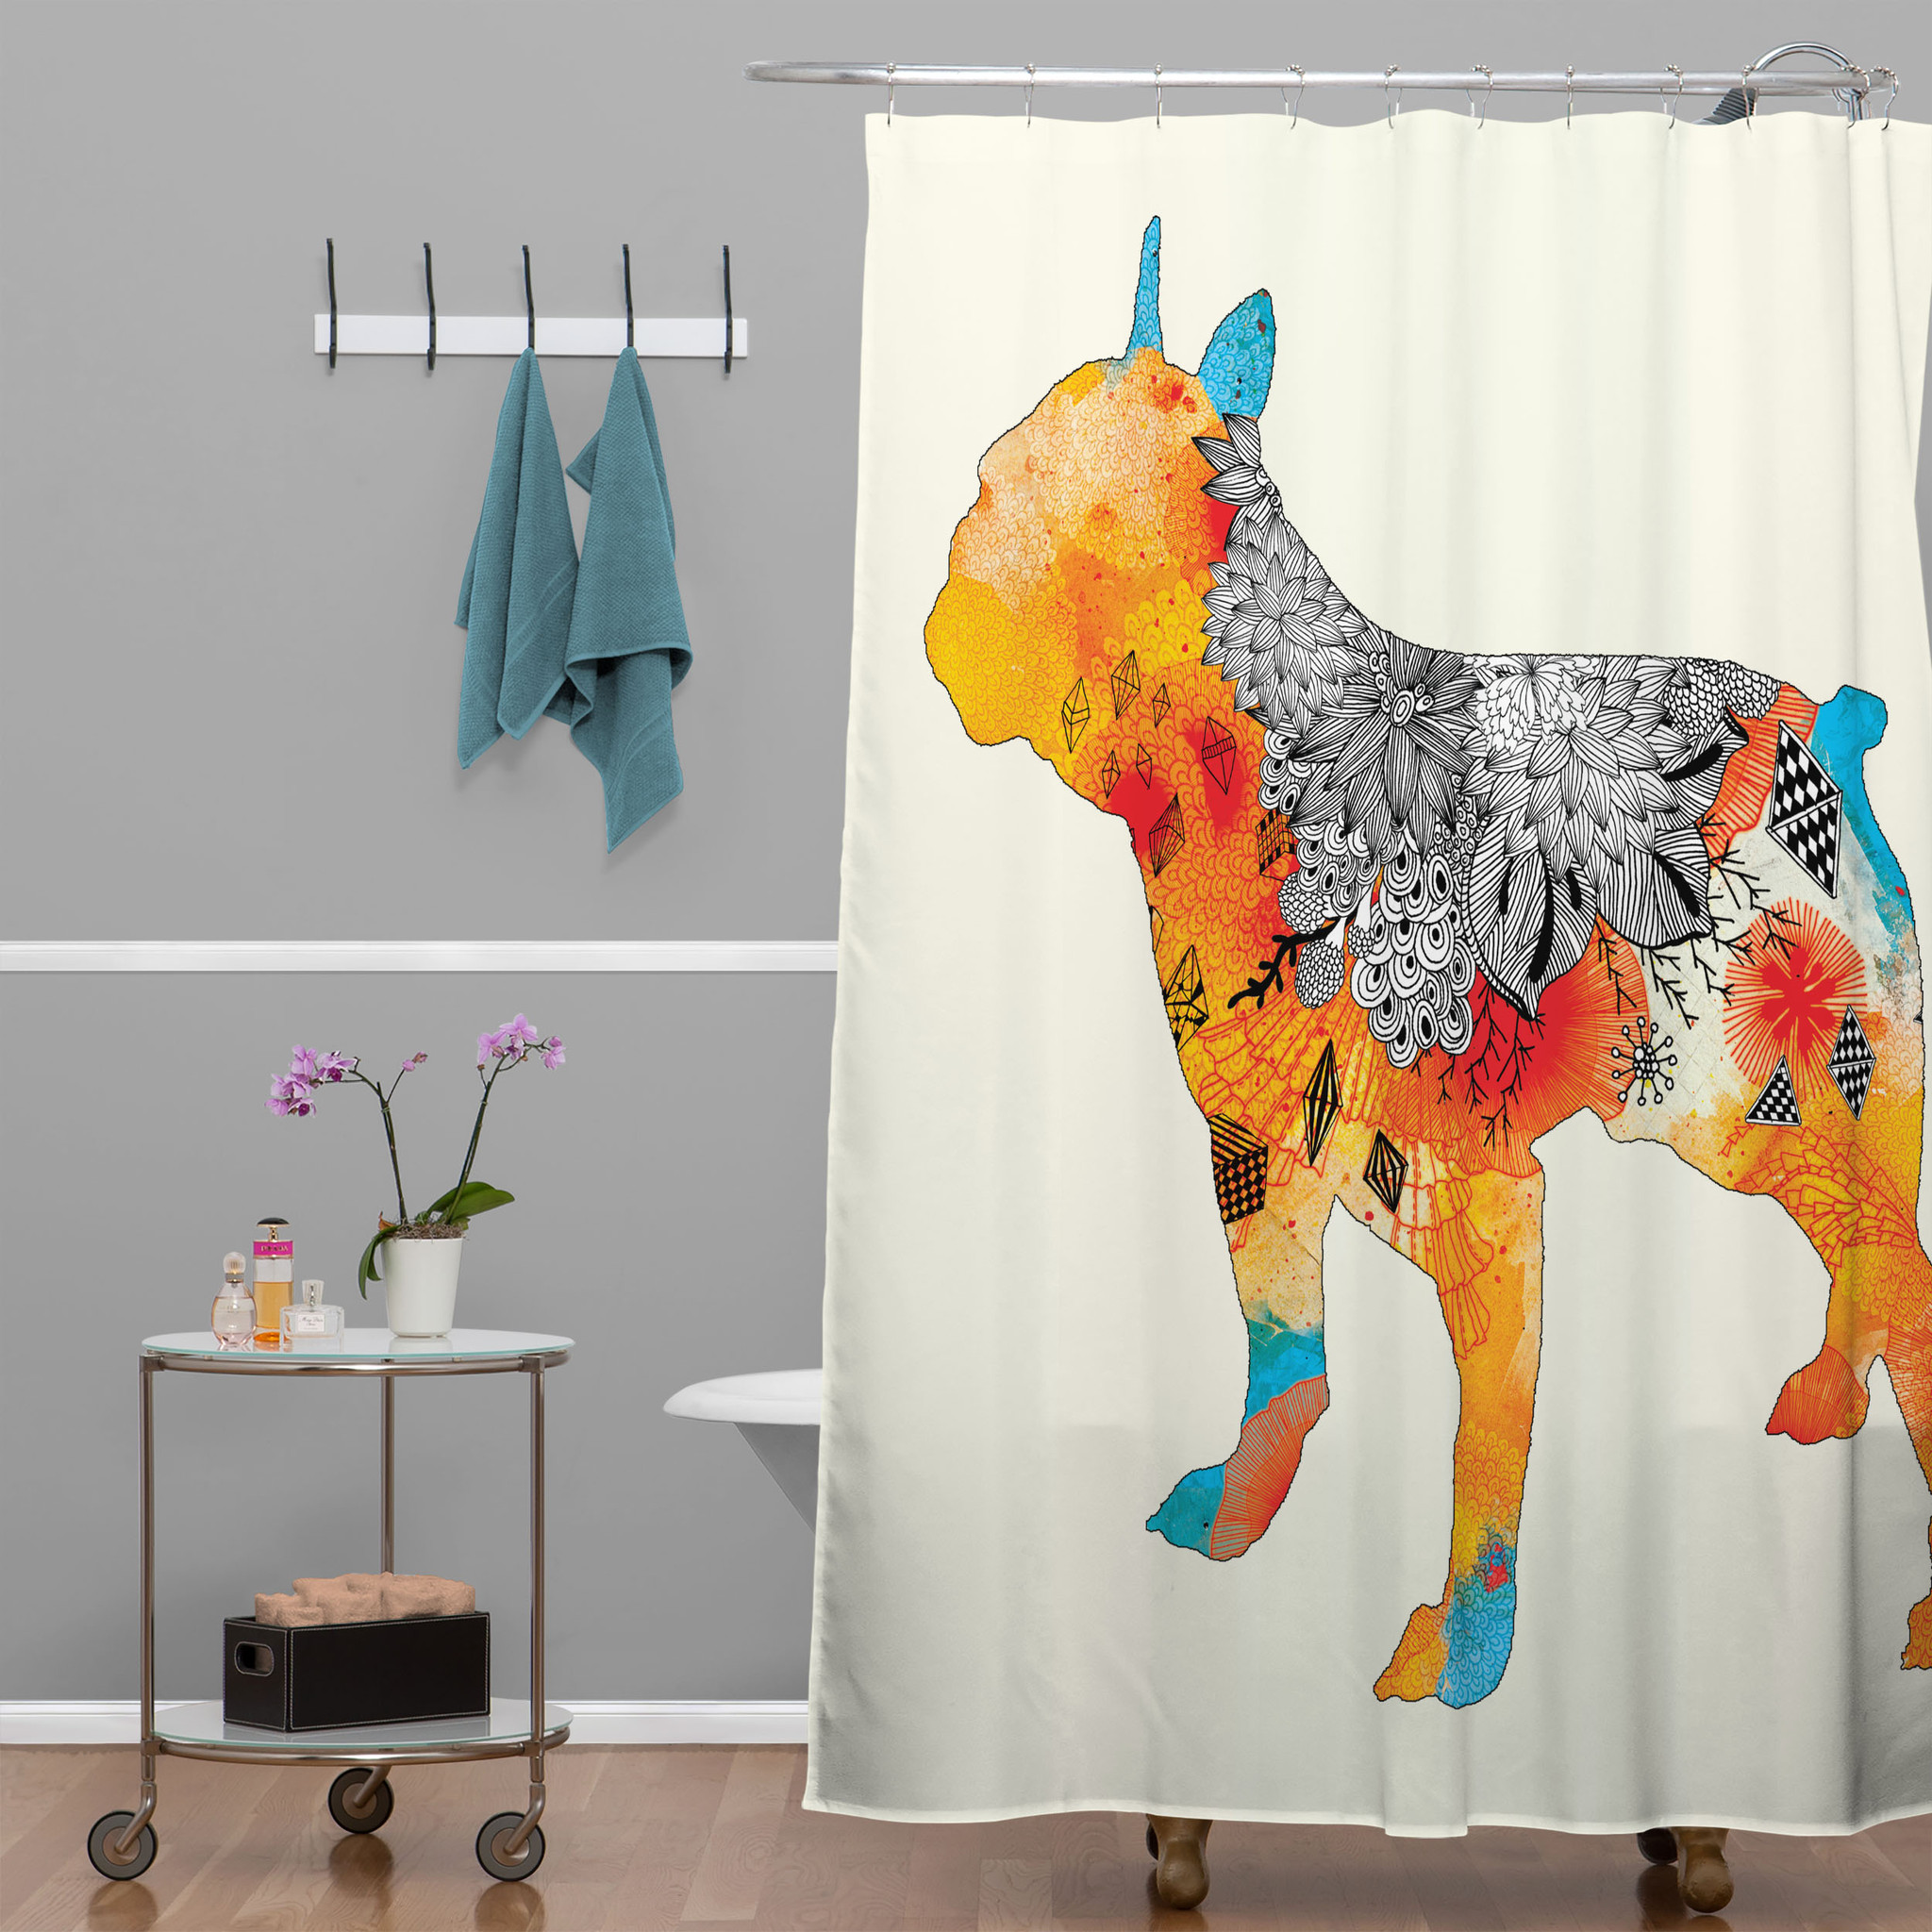 Chic peacock shower curtain featuring beautiful color peacock shower curtain and sidetable with rollers for your beautiful modern bathroom shower ideas